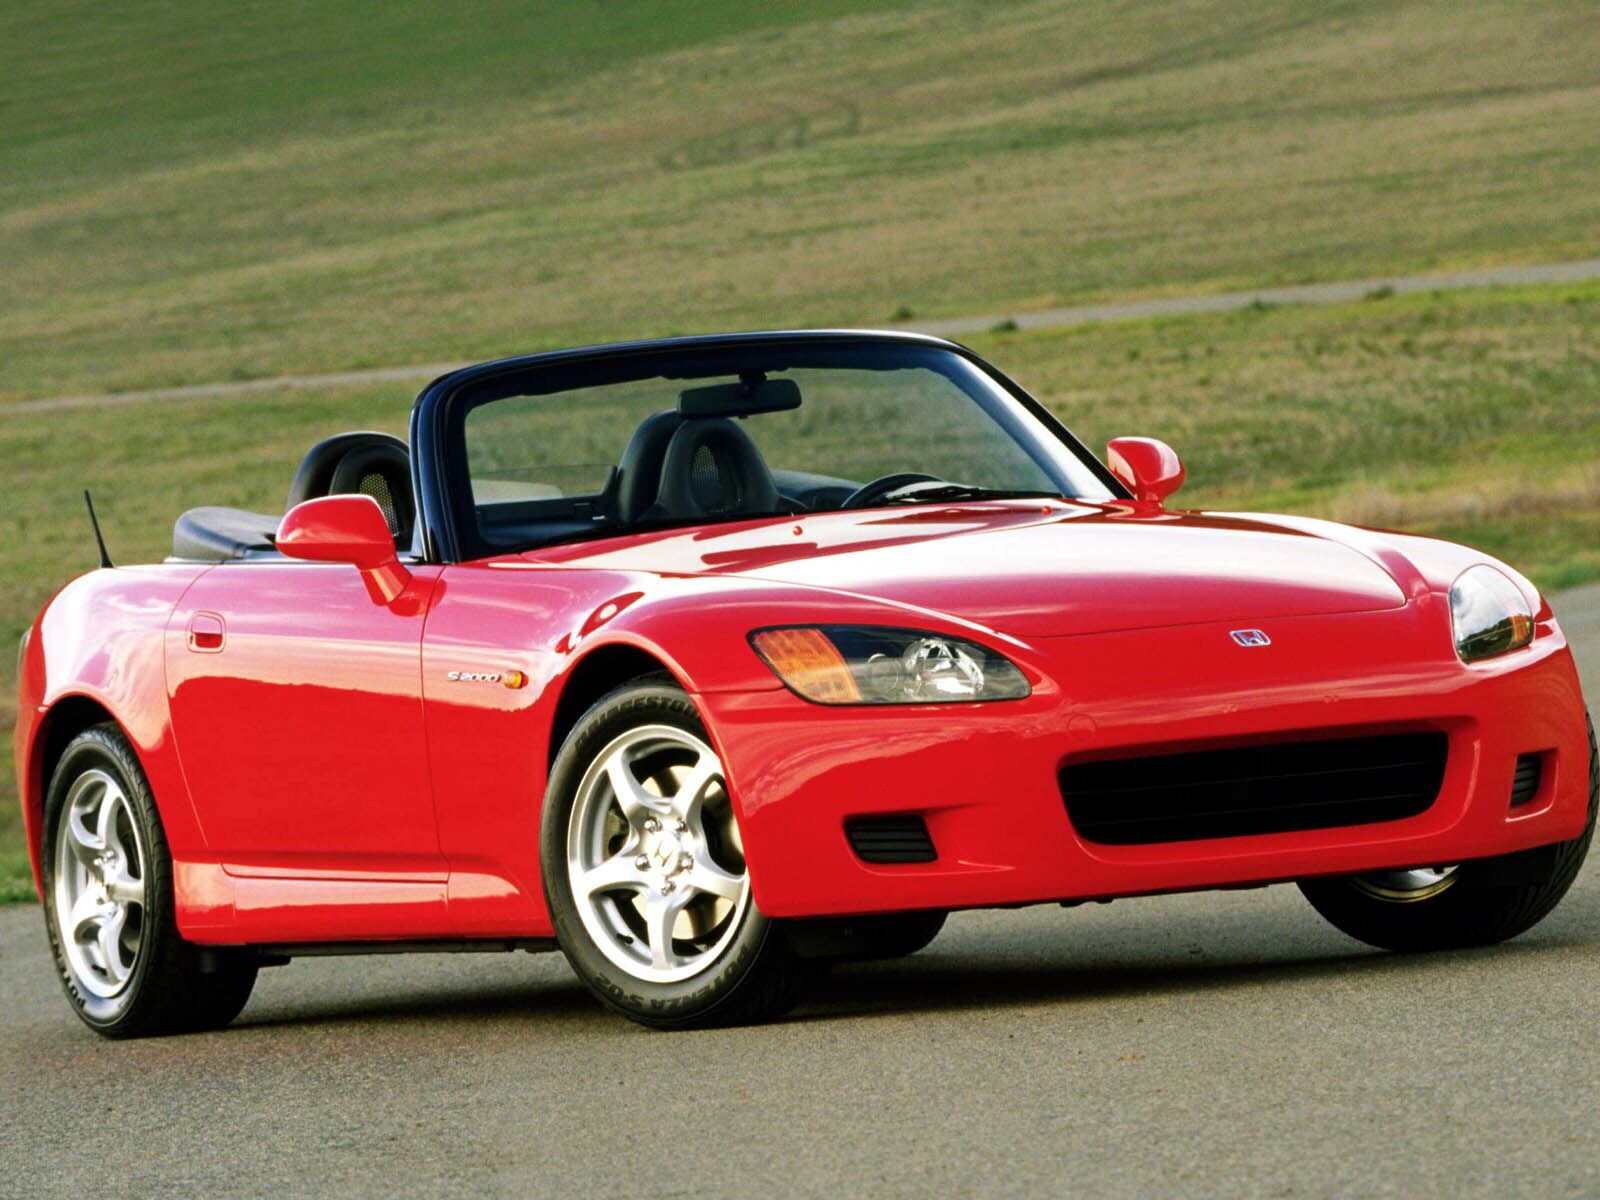 cool car wallpapers honda s2000. Black Bedroom Furniture Sets. Home Design Ideas